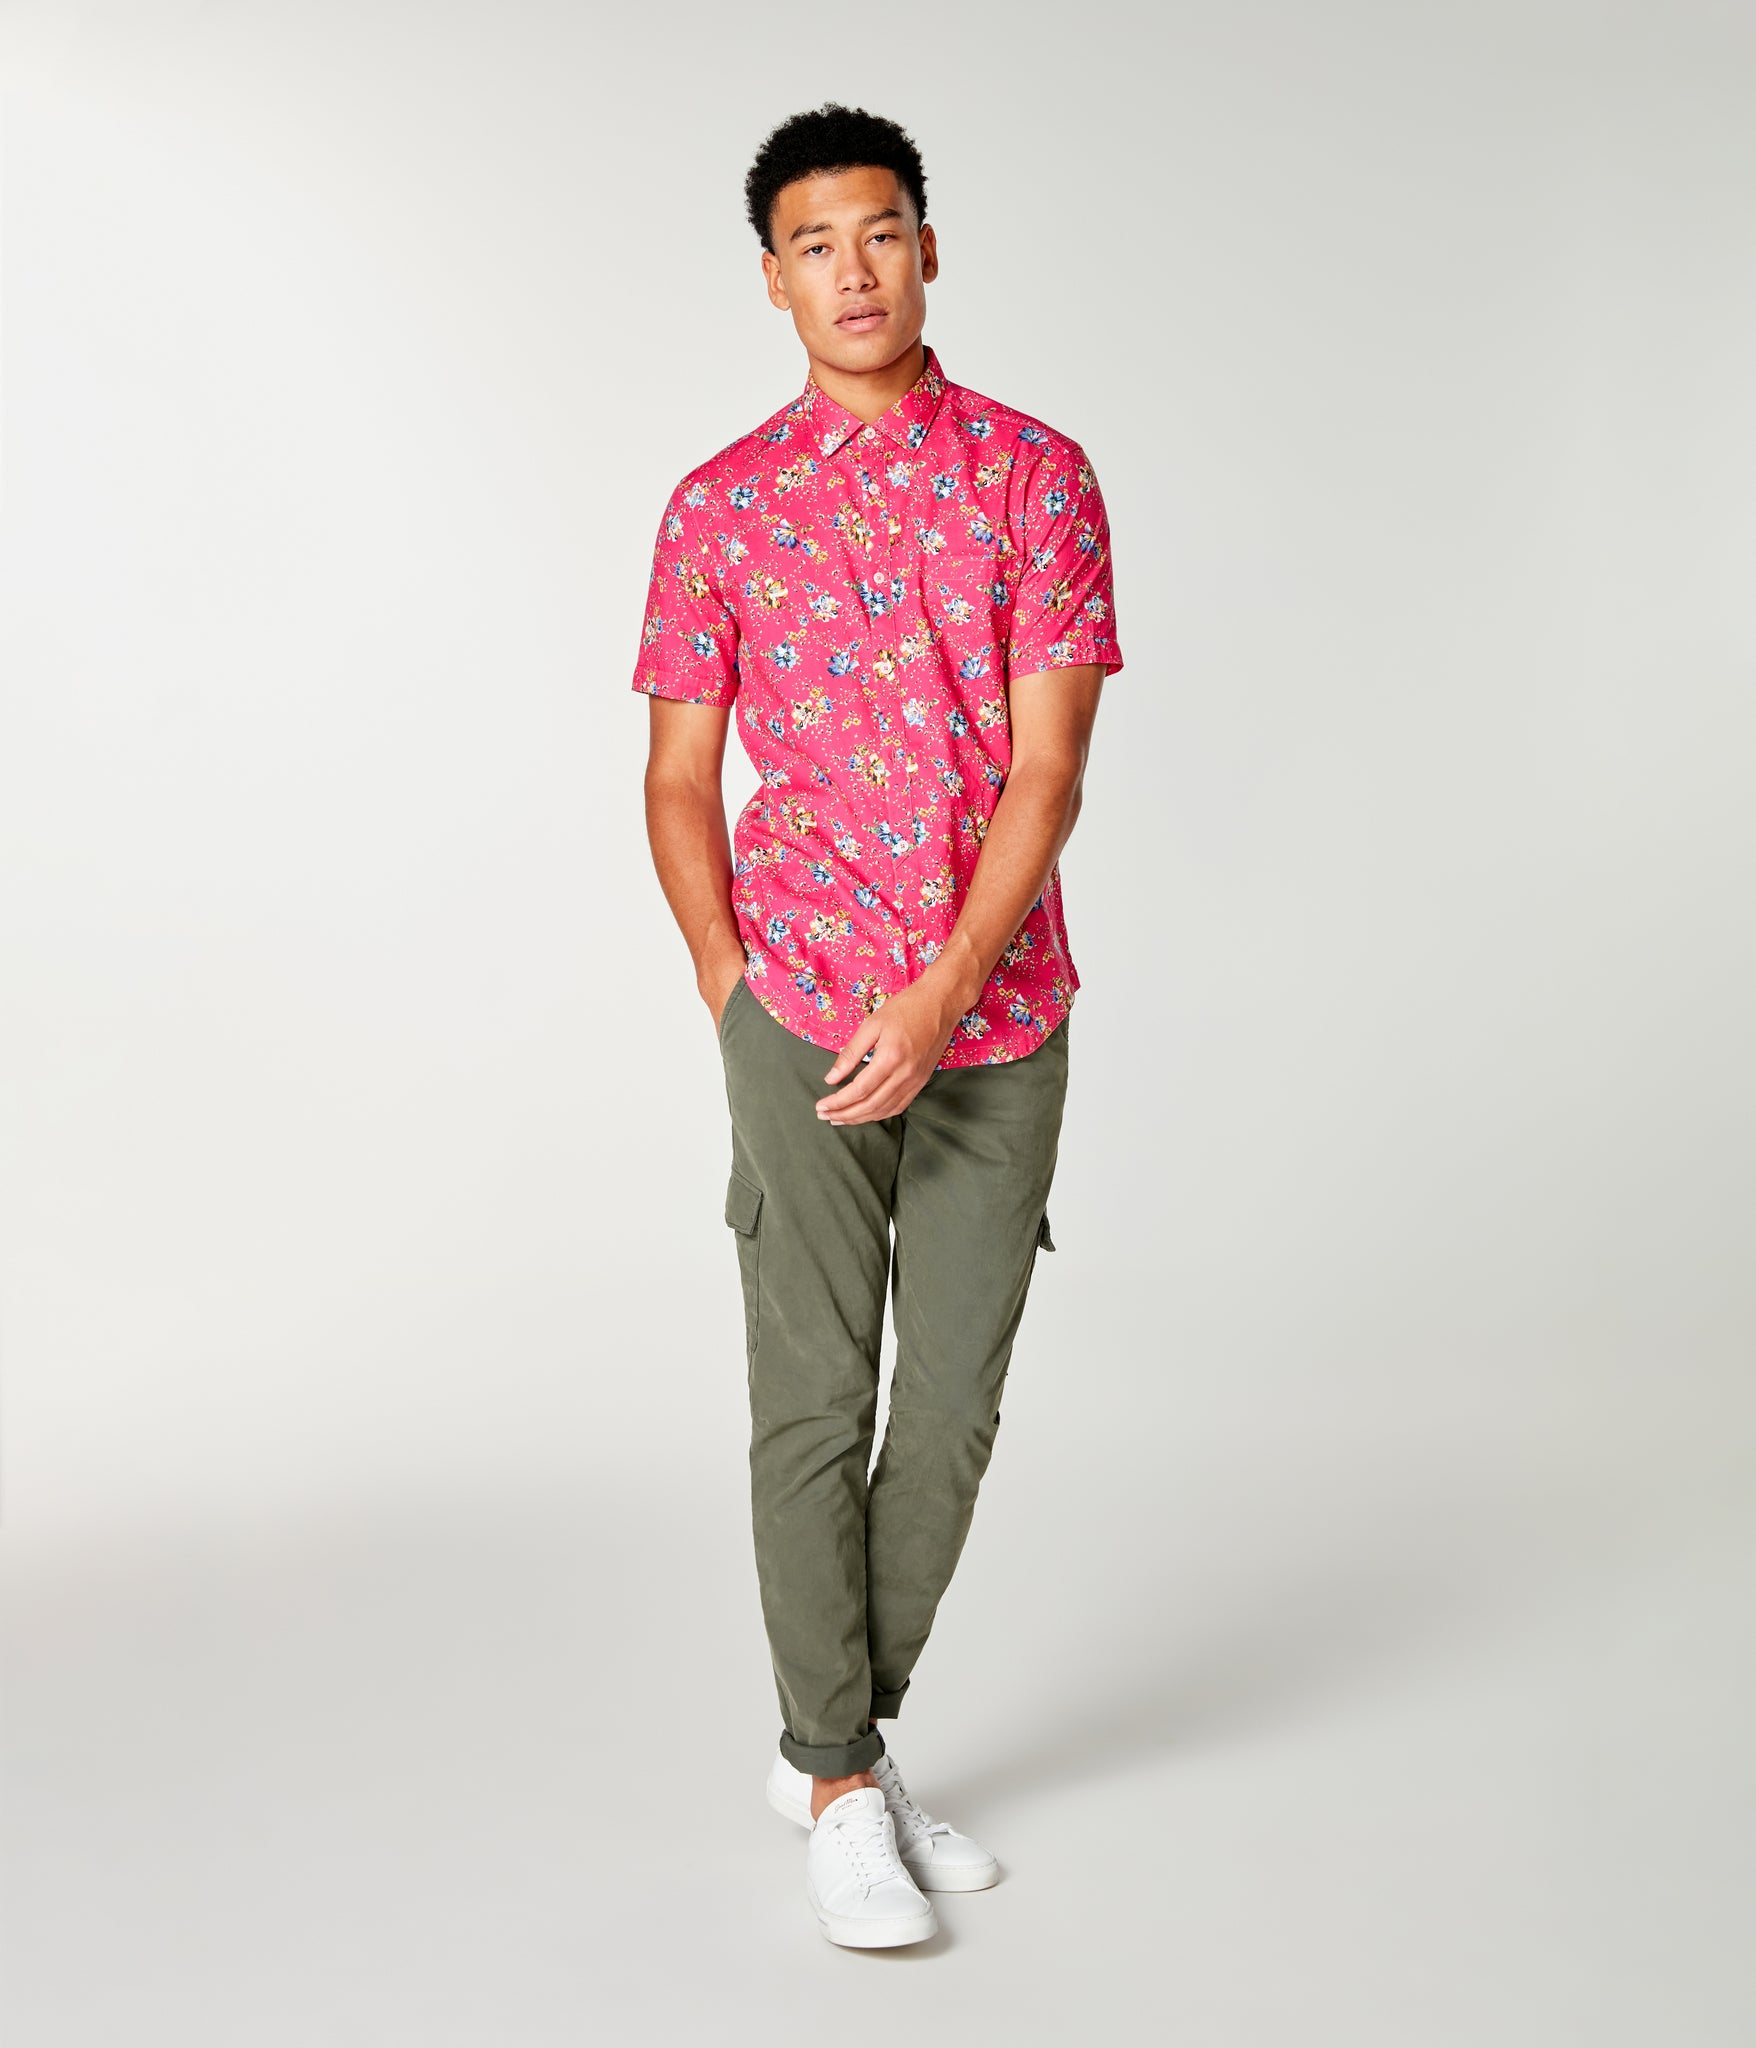 On-Point Print Shirt Short Sleeve - Jazzy Monarch Floral